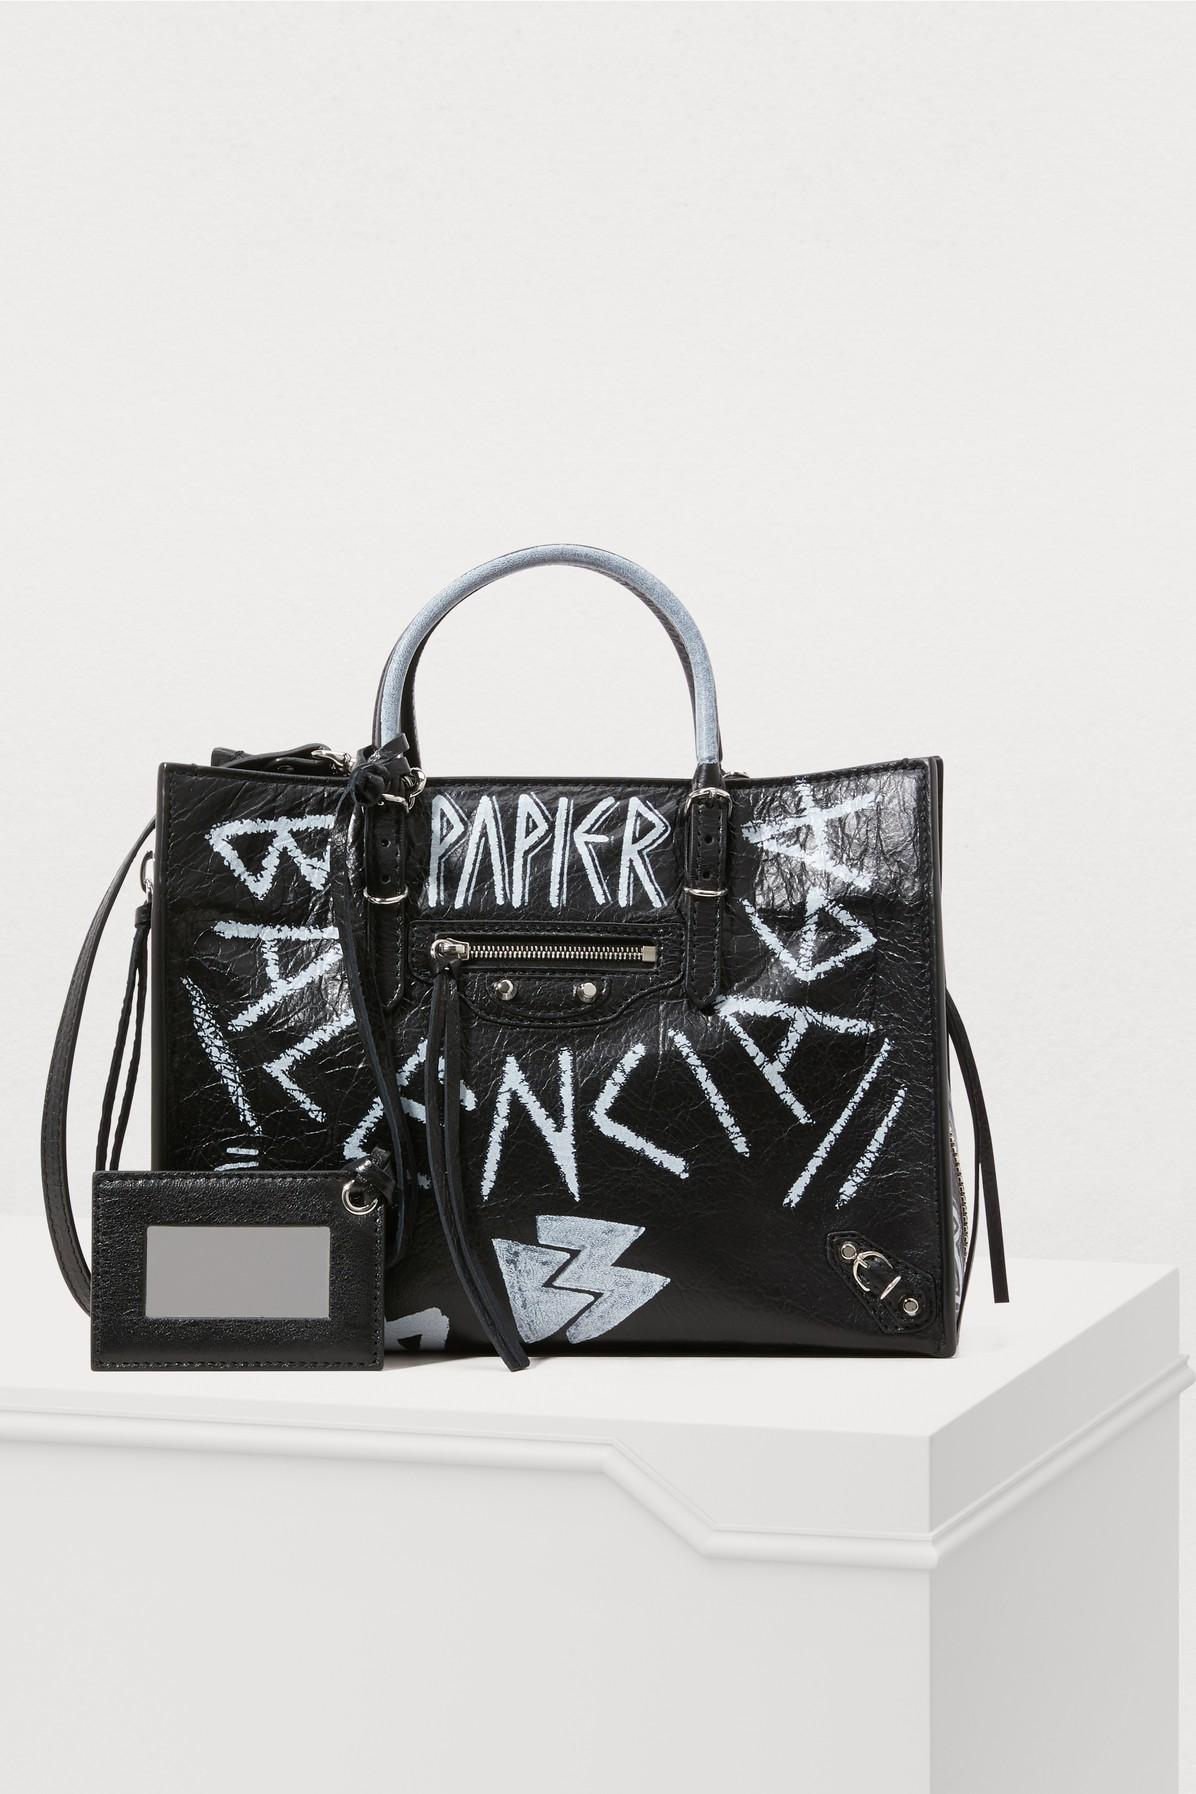 79c7e440290521 Balenciaga Papier A6 Zip Around Graffiti Tote Bag In Black/Multi ...